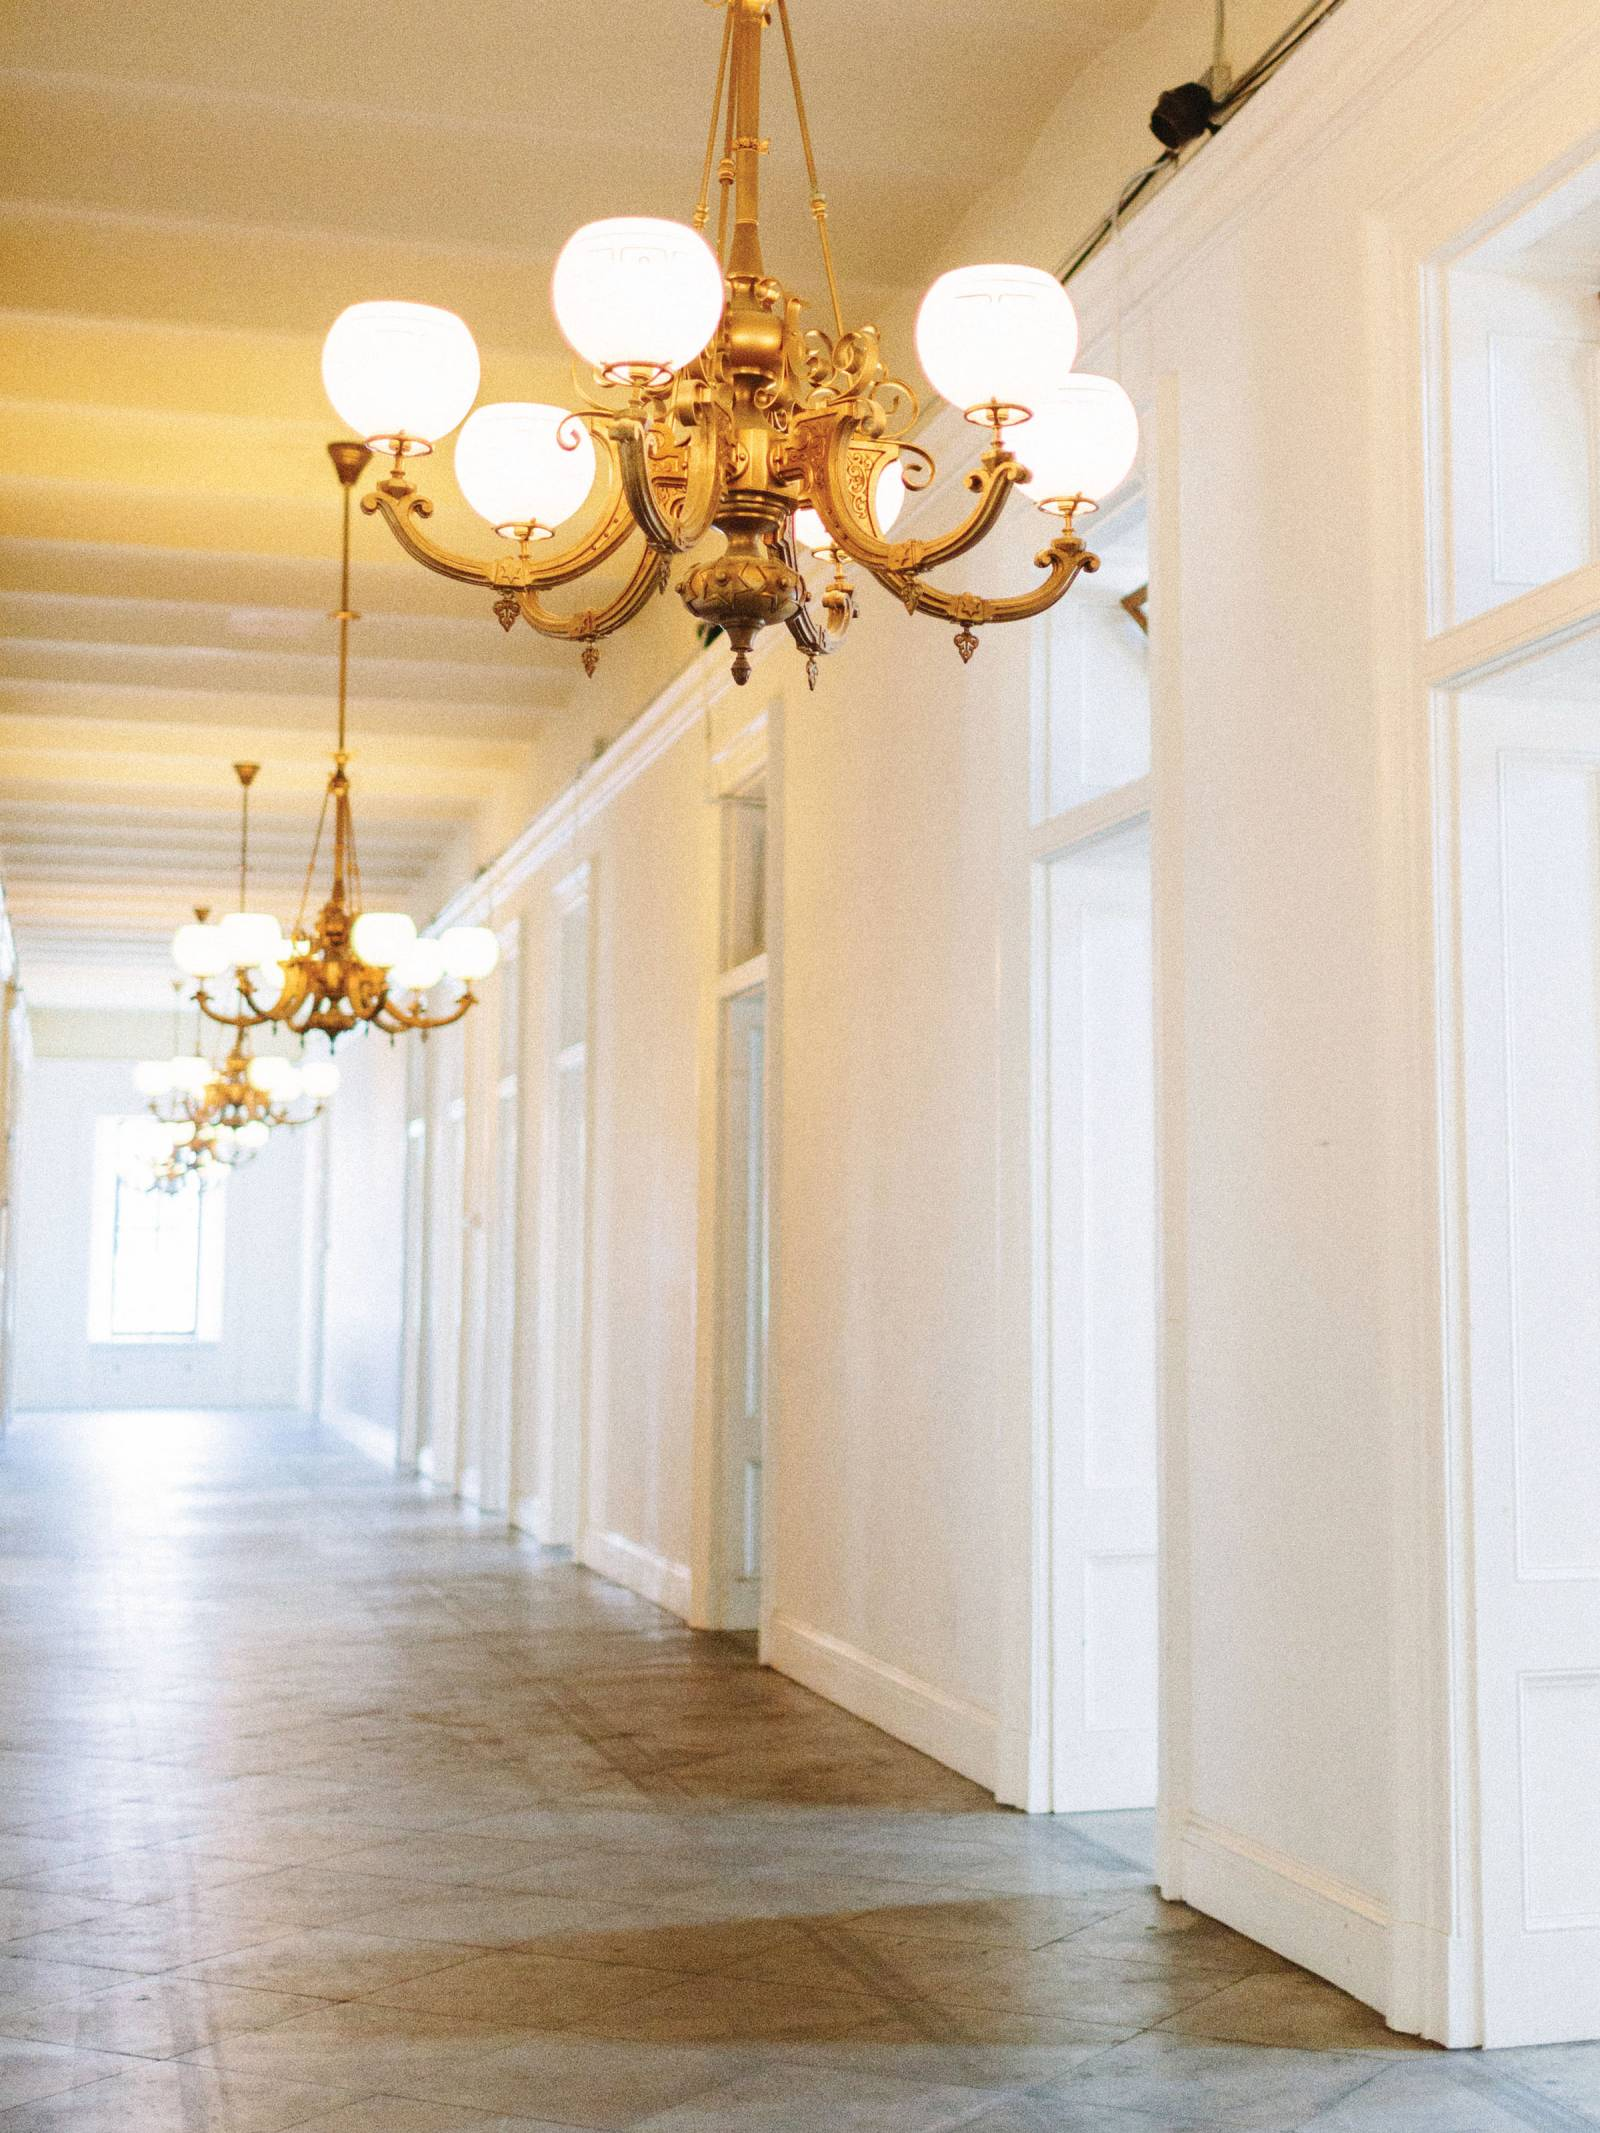 White walled hallway with vintage gold chandeliers at The San Francisco Mint